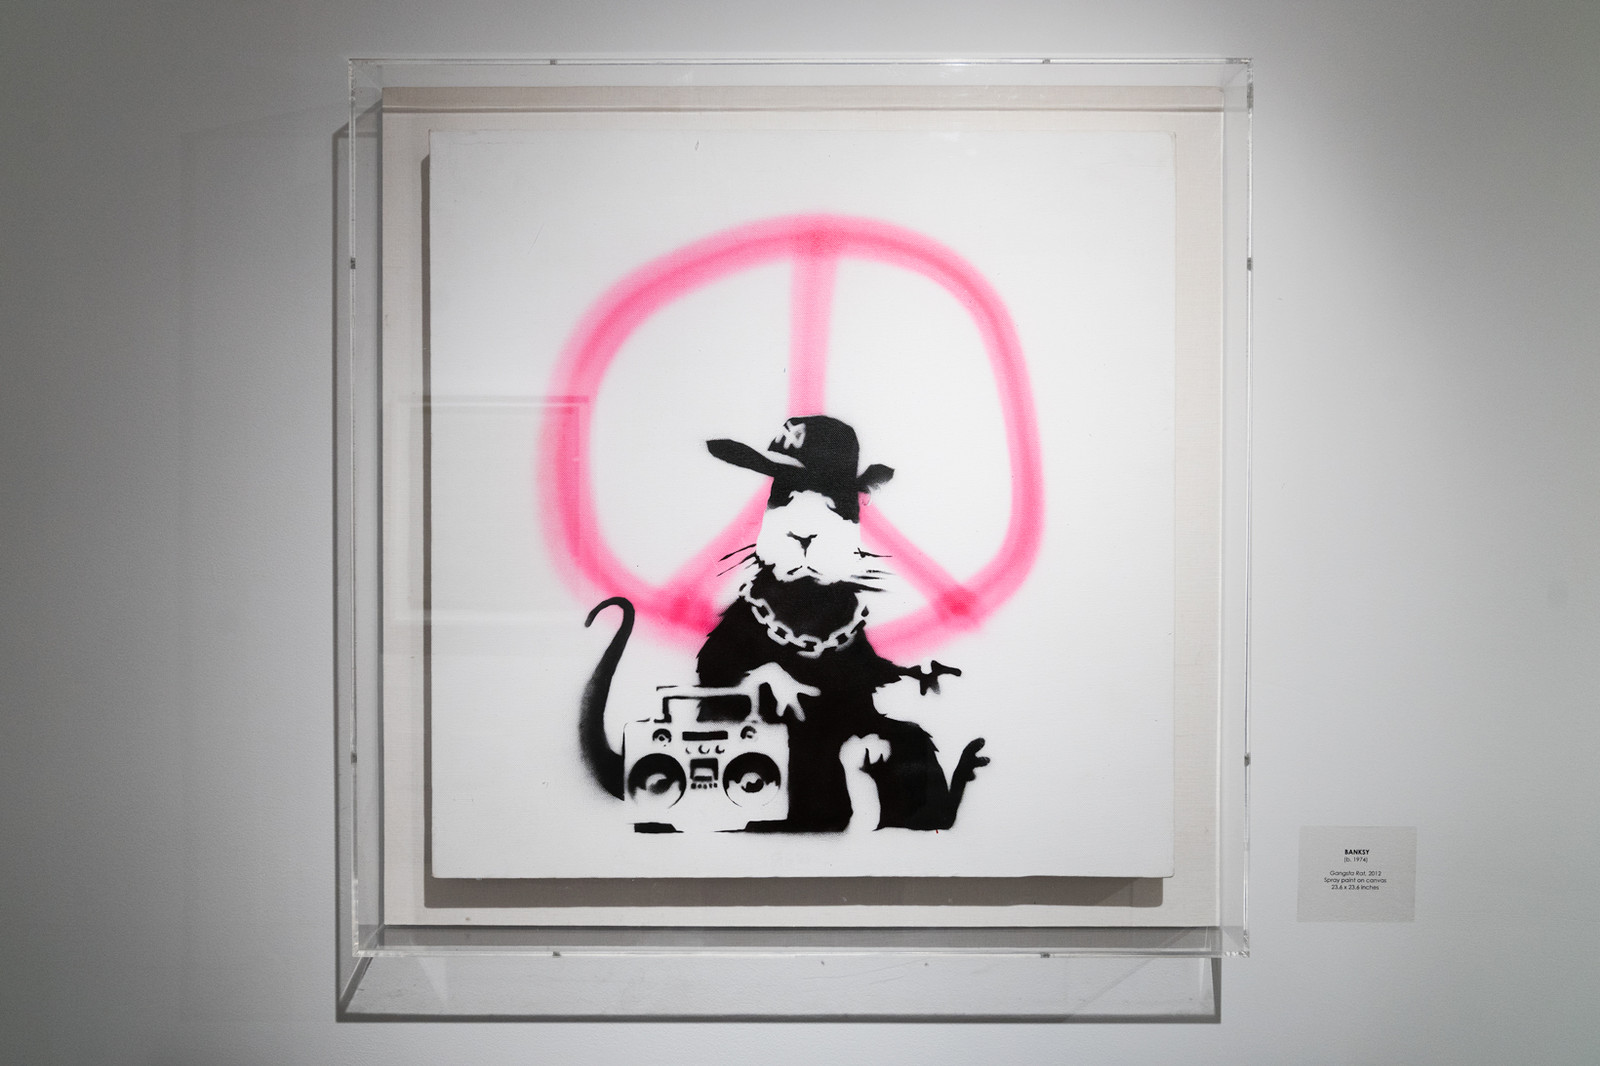 Keith Haring Banksy Ryan Ross Todd Kramer Ross+Kramer Gallery New York City